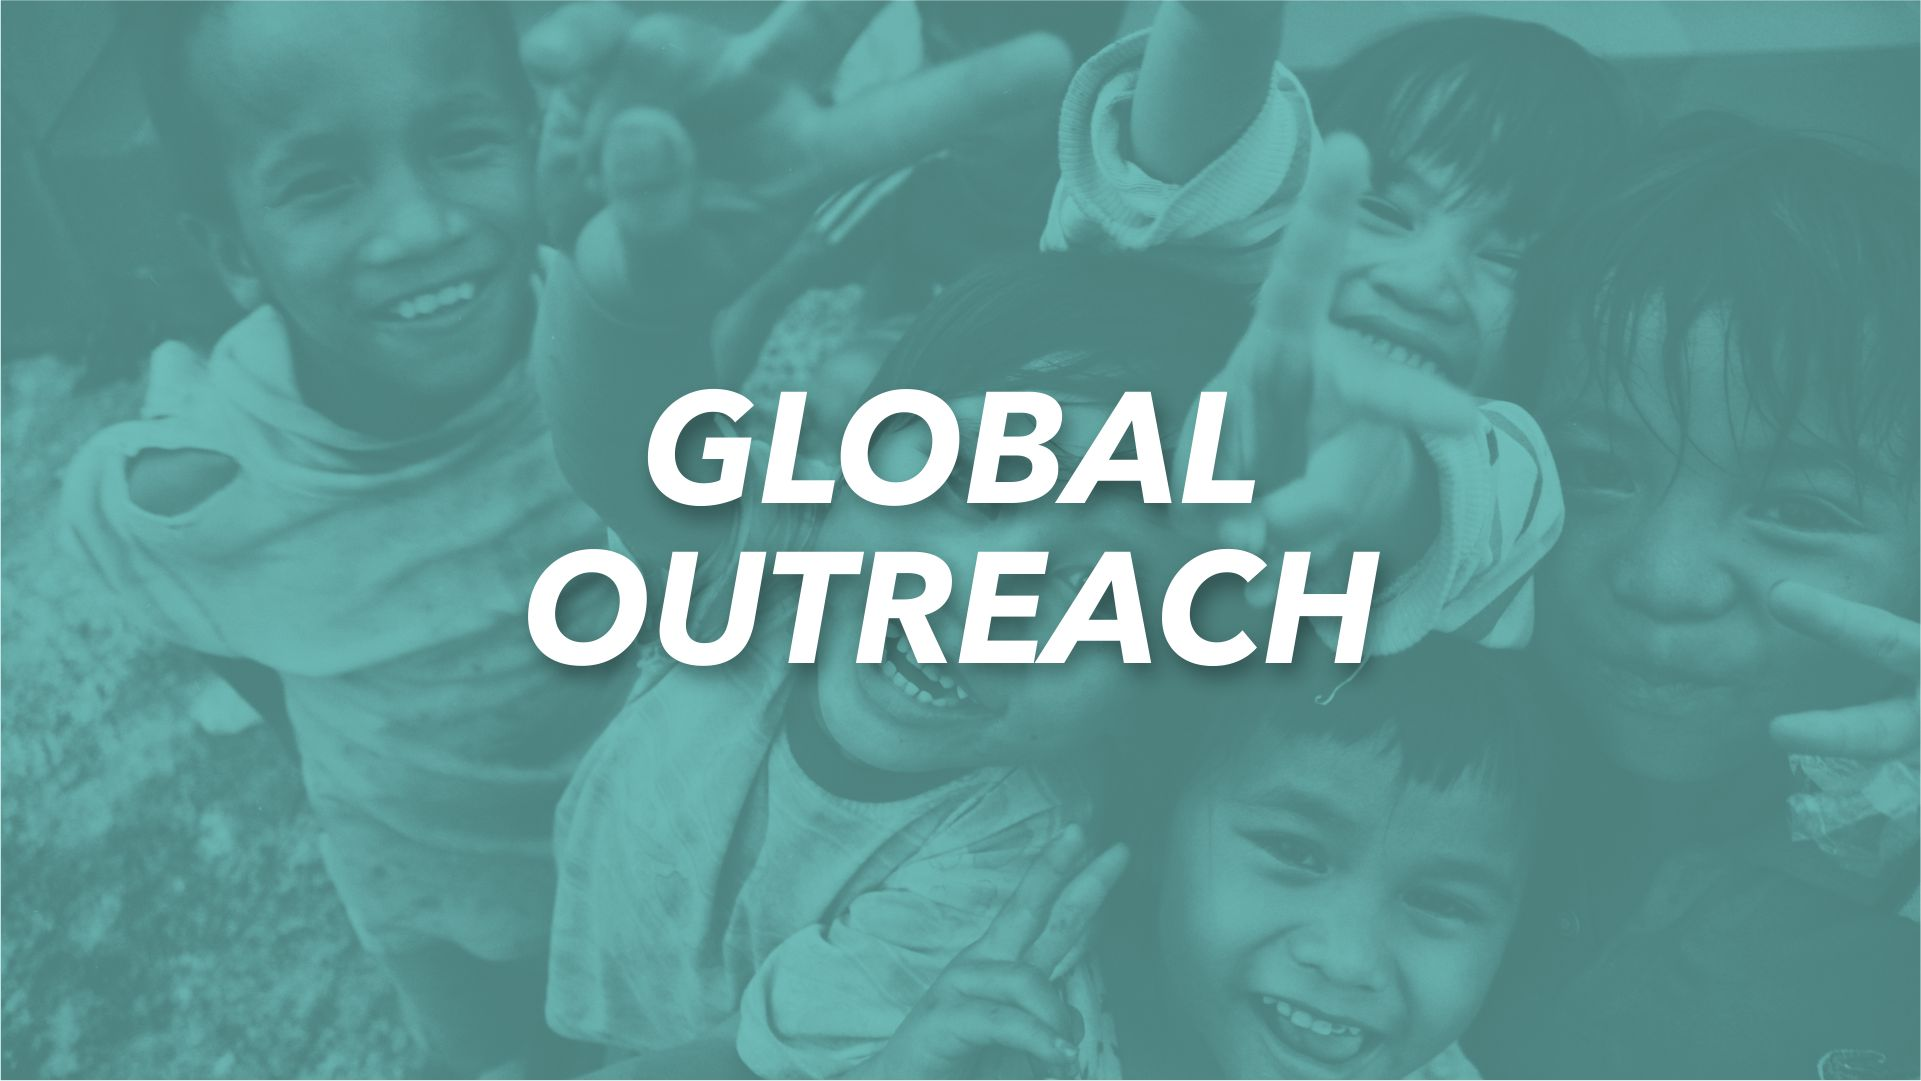 Prayer is the fuel of global outreach. Missions begin with prayer. Jesus said to go into all the world and preach the gospel, which is why we care for everyone. In order to preach the gospel, we send teams around the world.